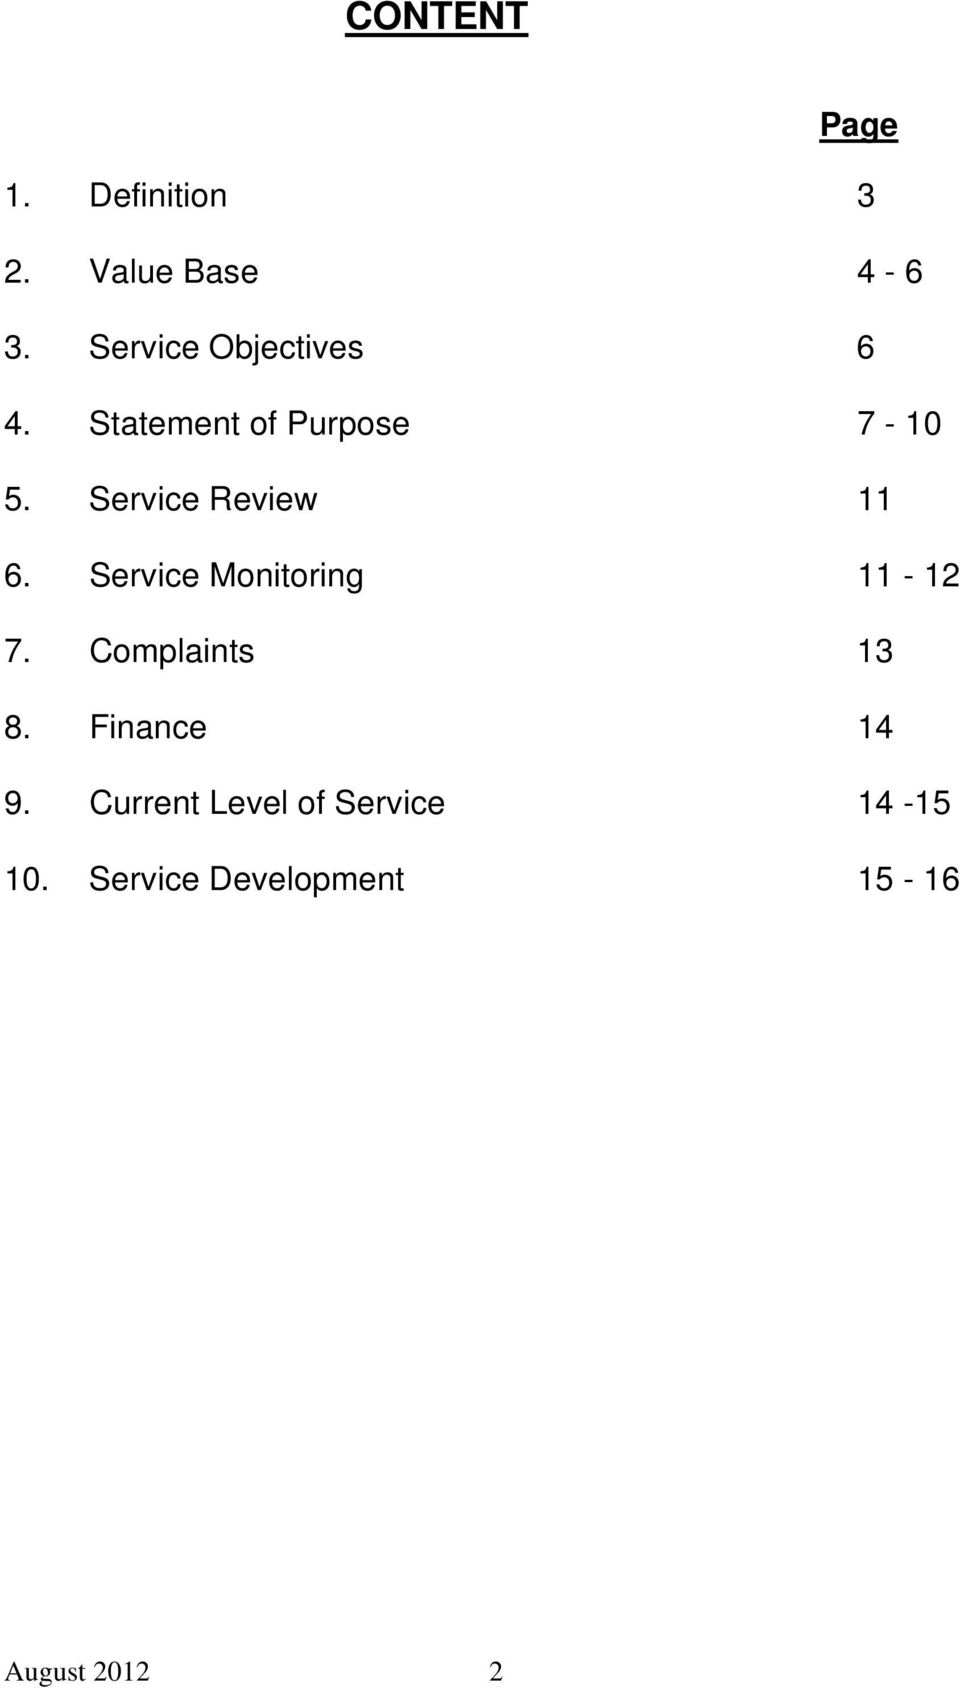 Service Review 11 6. Service Monitoring 11-12 7. Complaints 13 8.